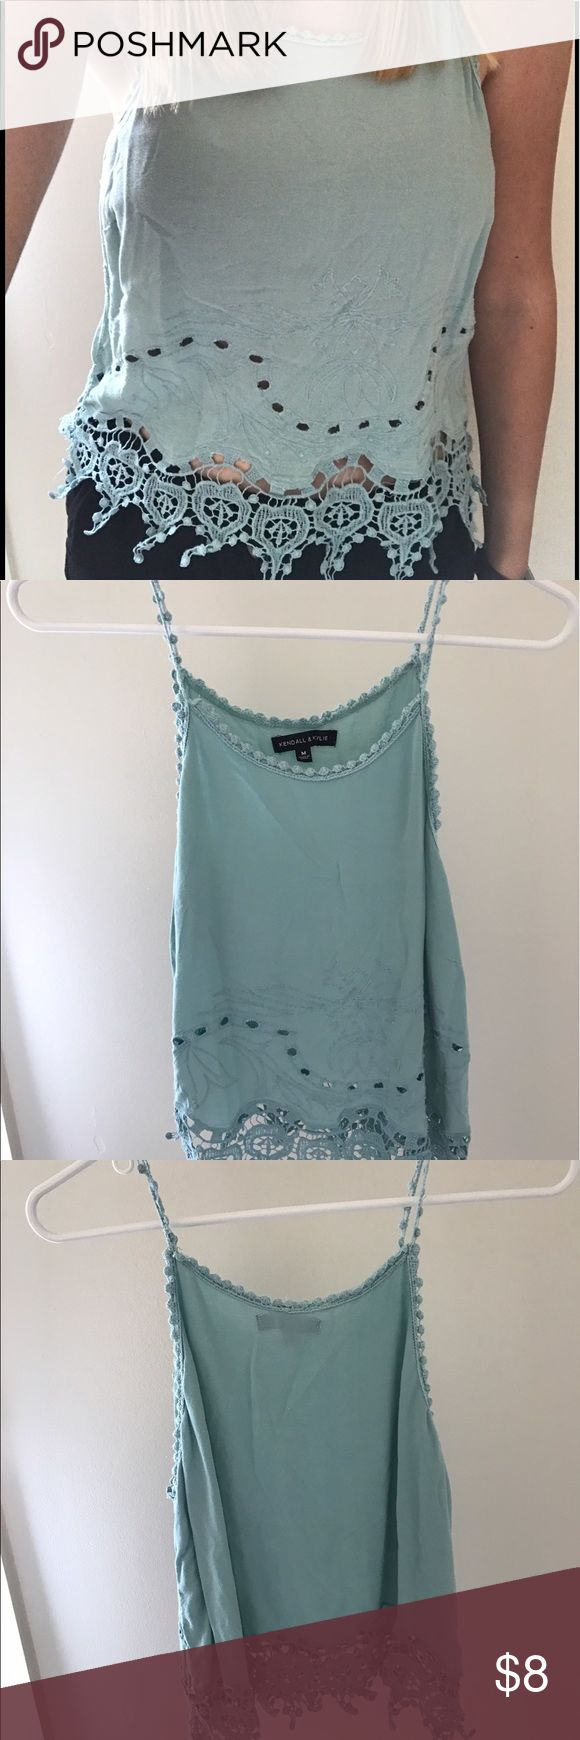 Kendall + Kylie Top Kendall + Kylie crop top purchased at Pacsun. Fits to dark high-waist jeans or skirts. I'd suggest to wear a strapless bra as the straps are very thin and beautifully detailed! Kendall & Kylie Tops Crop Tops